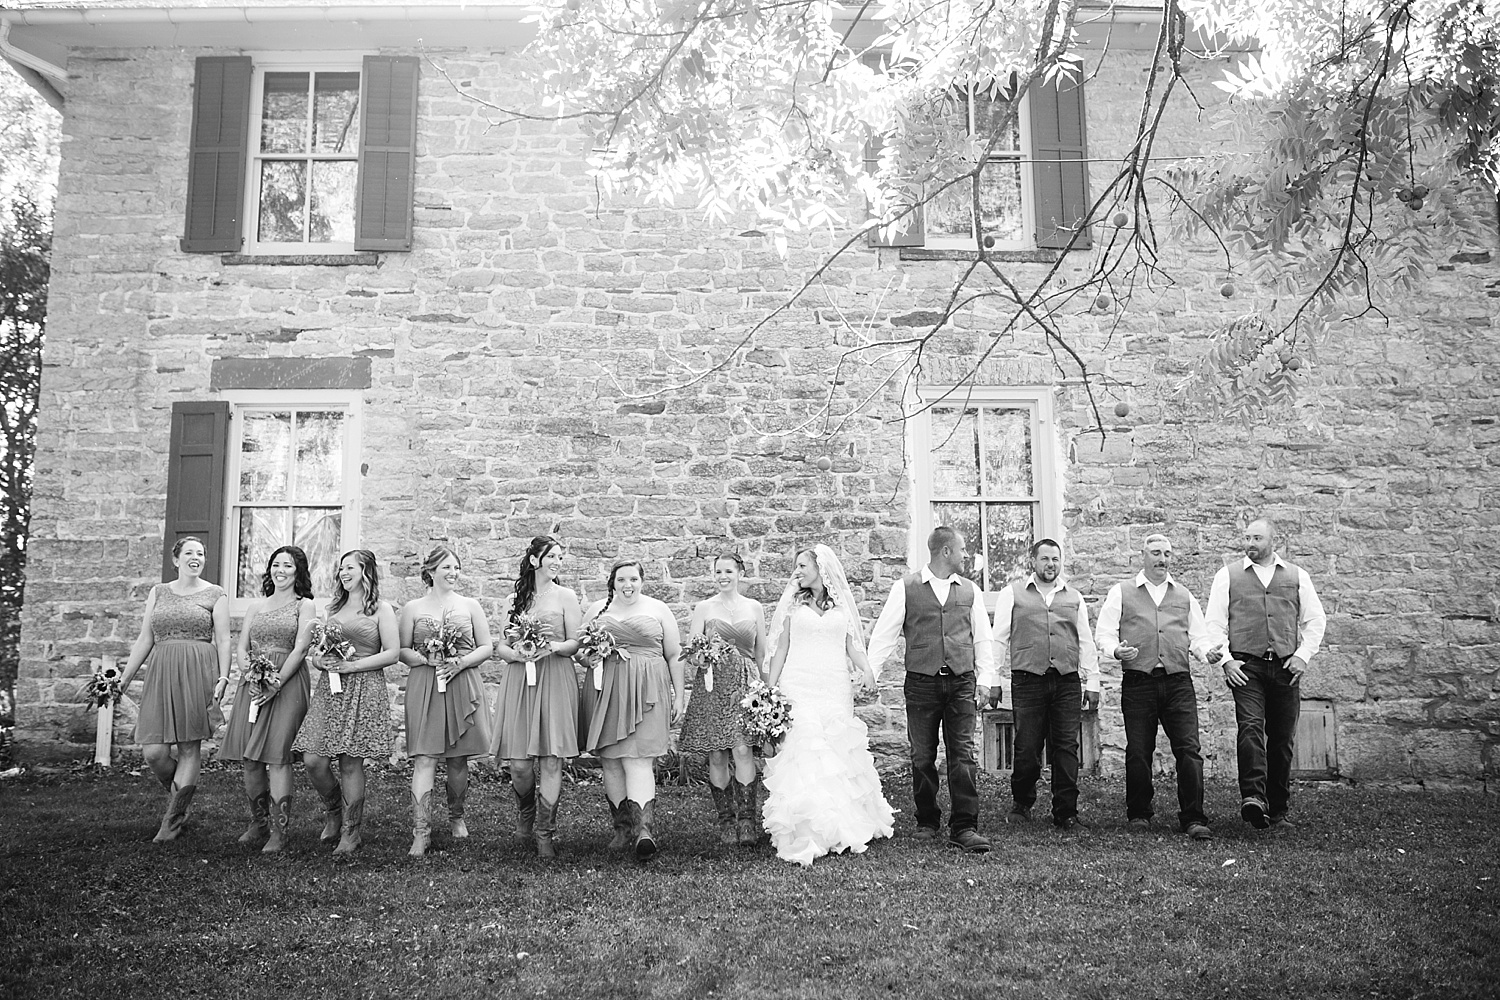 jennyryan_newbeginnings_farmstead_upstatenewyork_wedding_image065.jpg